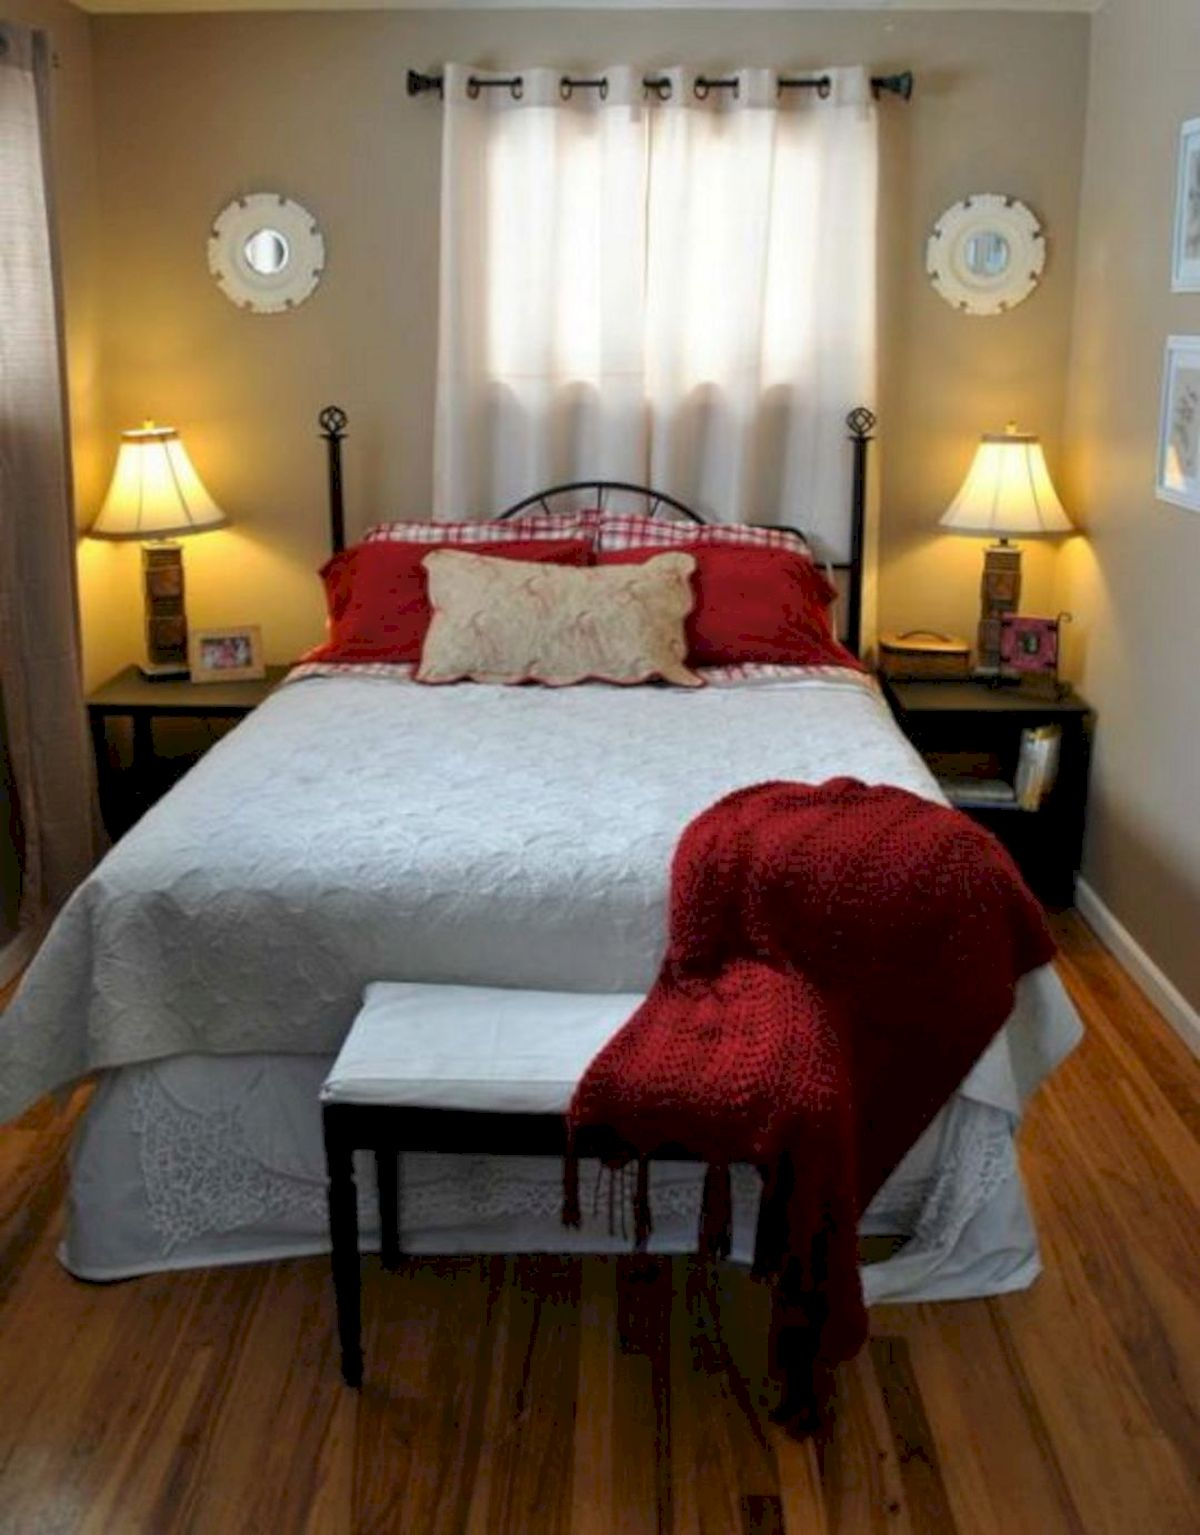 Awesome Small Bedroom Decorating Ideas On A Budget (3)